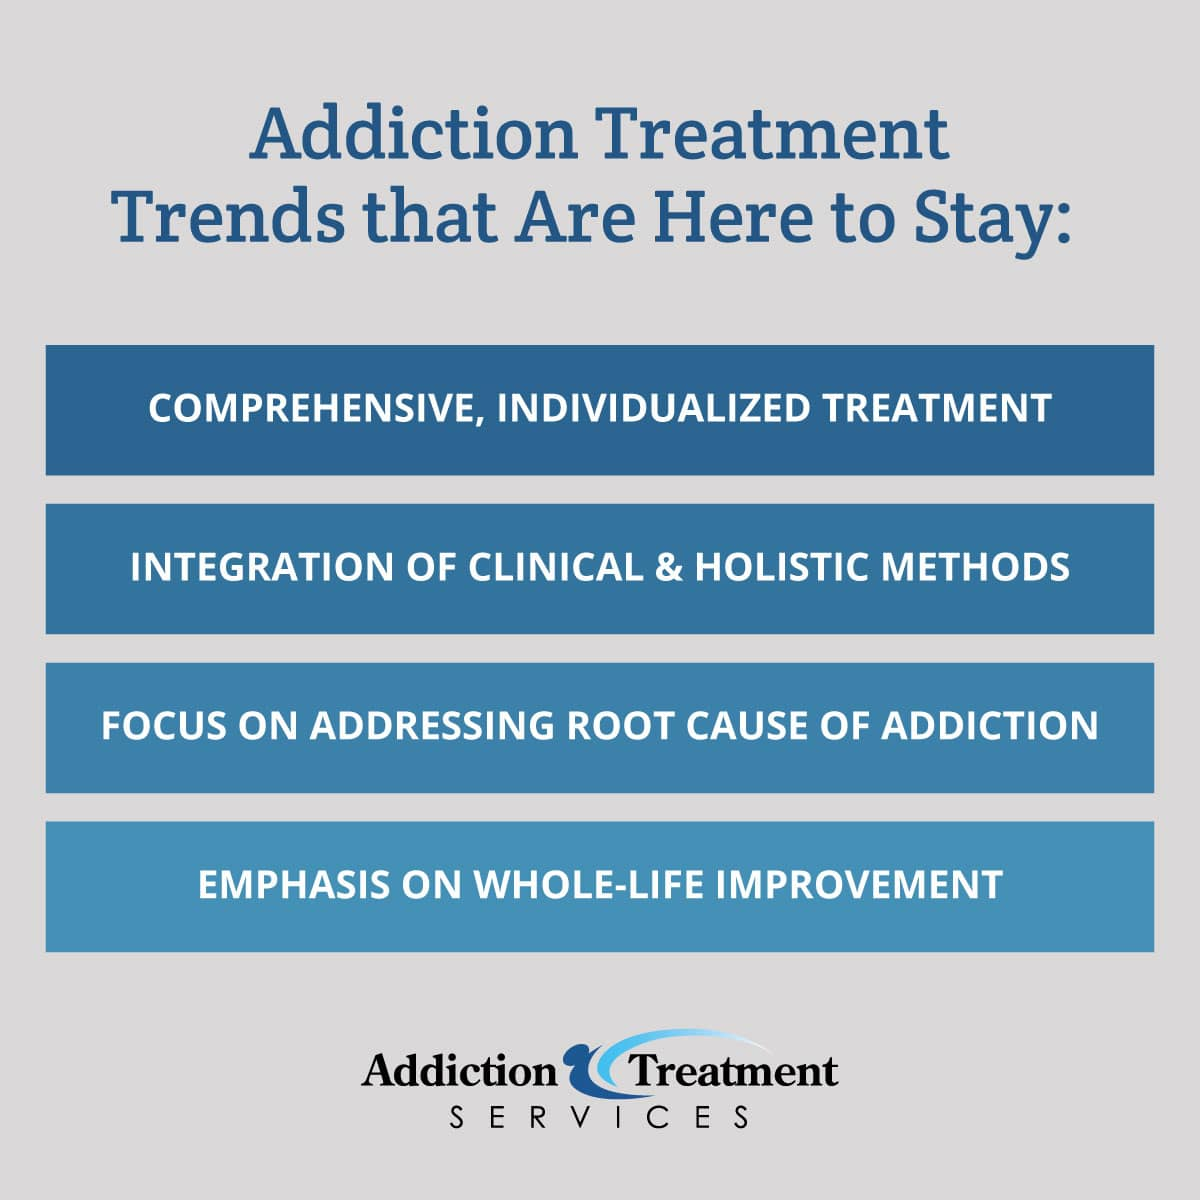 New Addiction Treatment Trends That Are Here to Stay - ATS